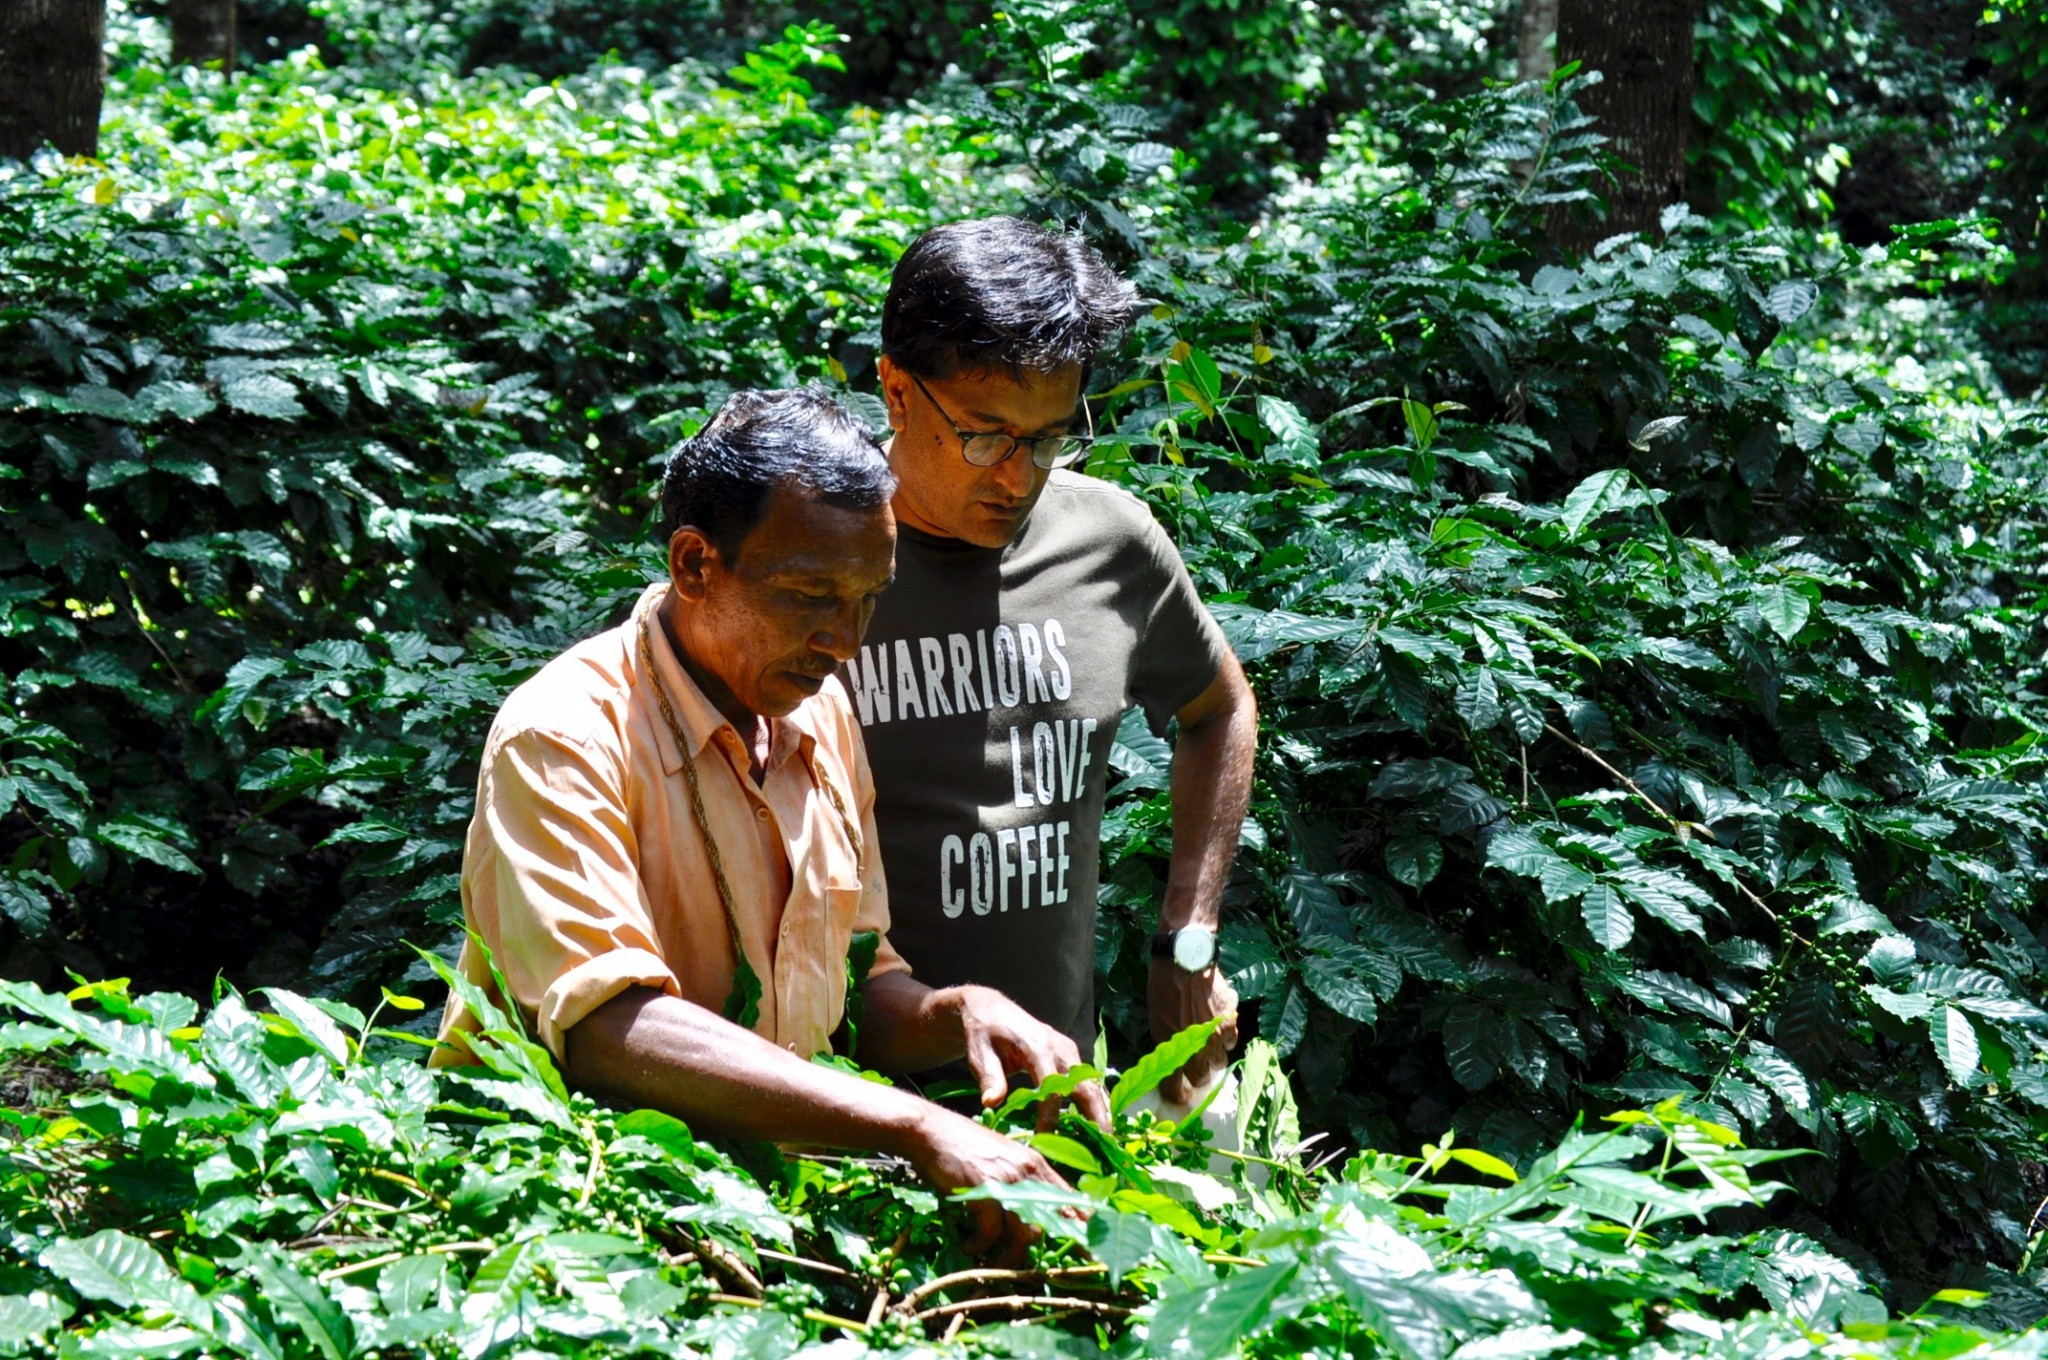 """Interview with Manoj Kumar, India: <br> """"WE SHOULD TALK ABOUT SUSTAINABLE LAND MANAGEMENT INSTEAD OF CARBON OFFSETS"""""""